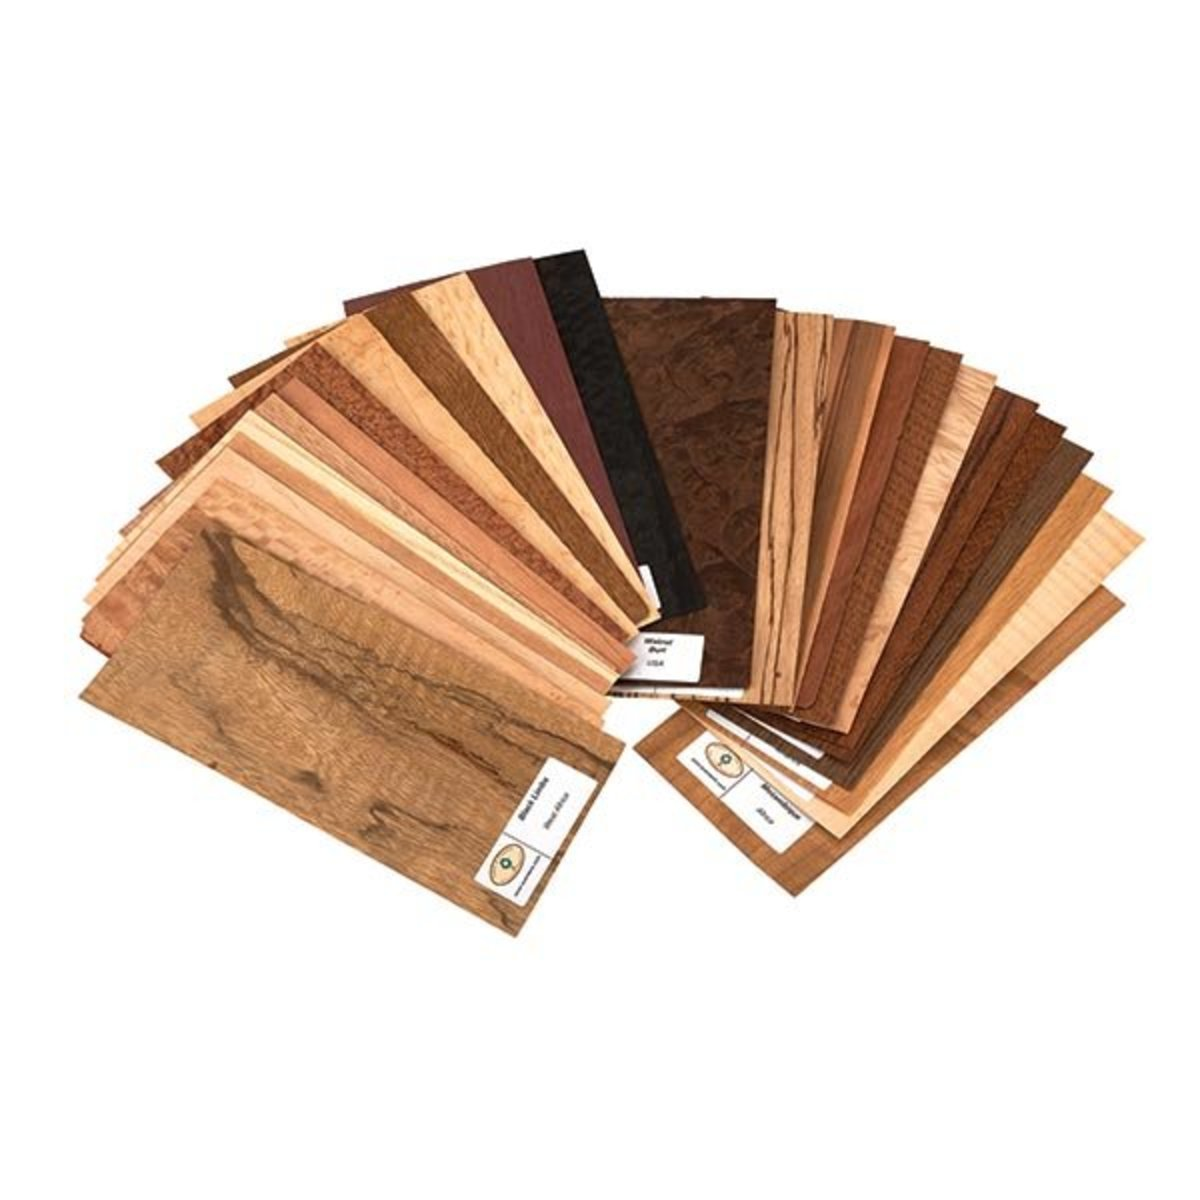 """View a Larger Image of Wood Identification Kit and Wood Veneer Sample Pack - Exotic Species - 4"""" x 9"""" - 25 Piece"""